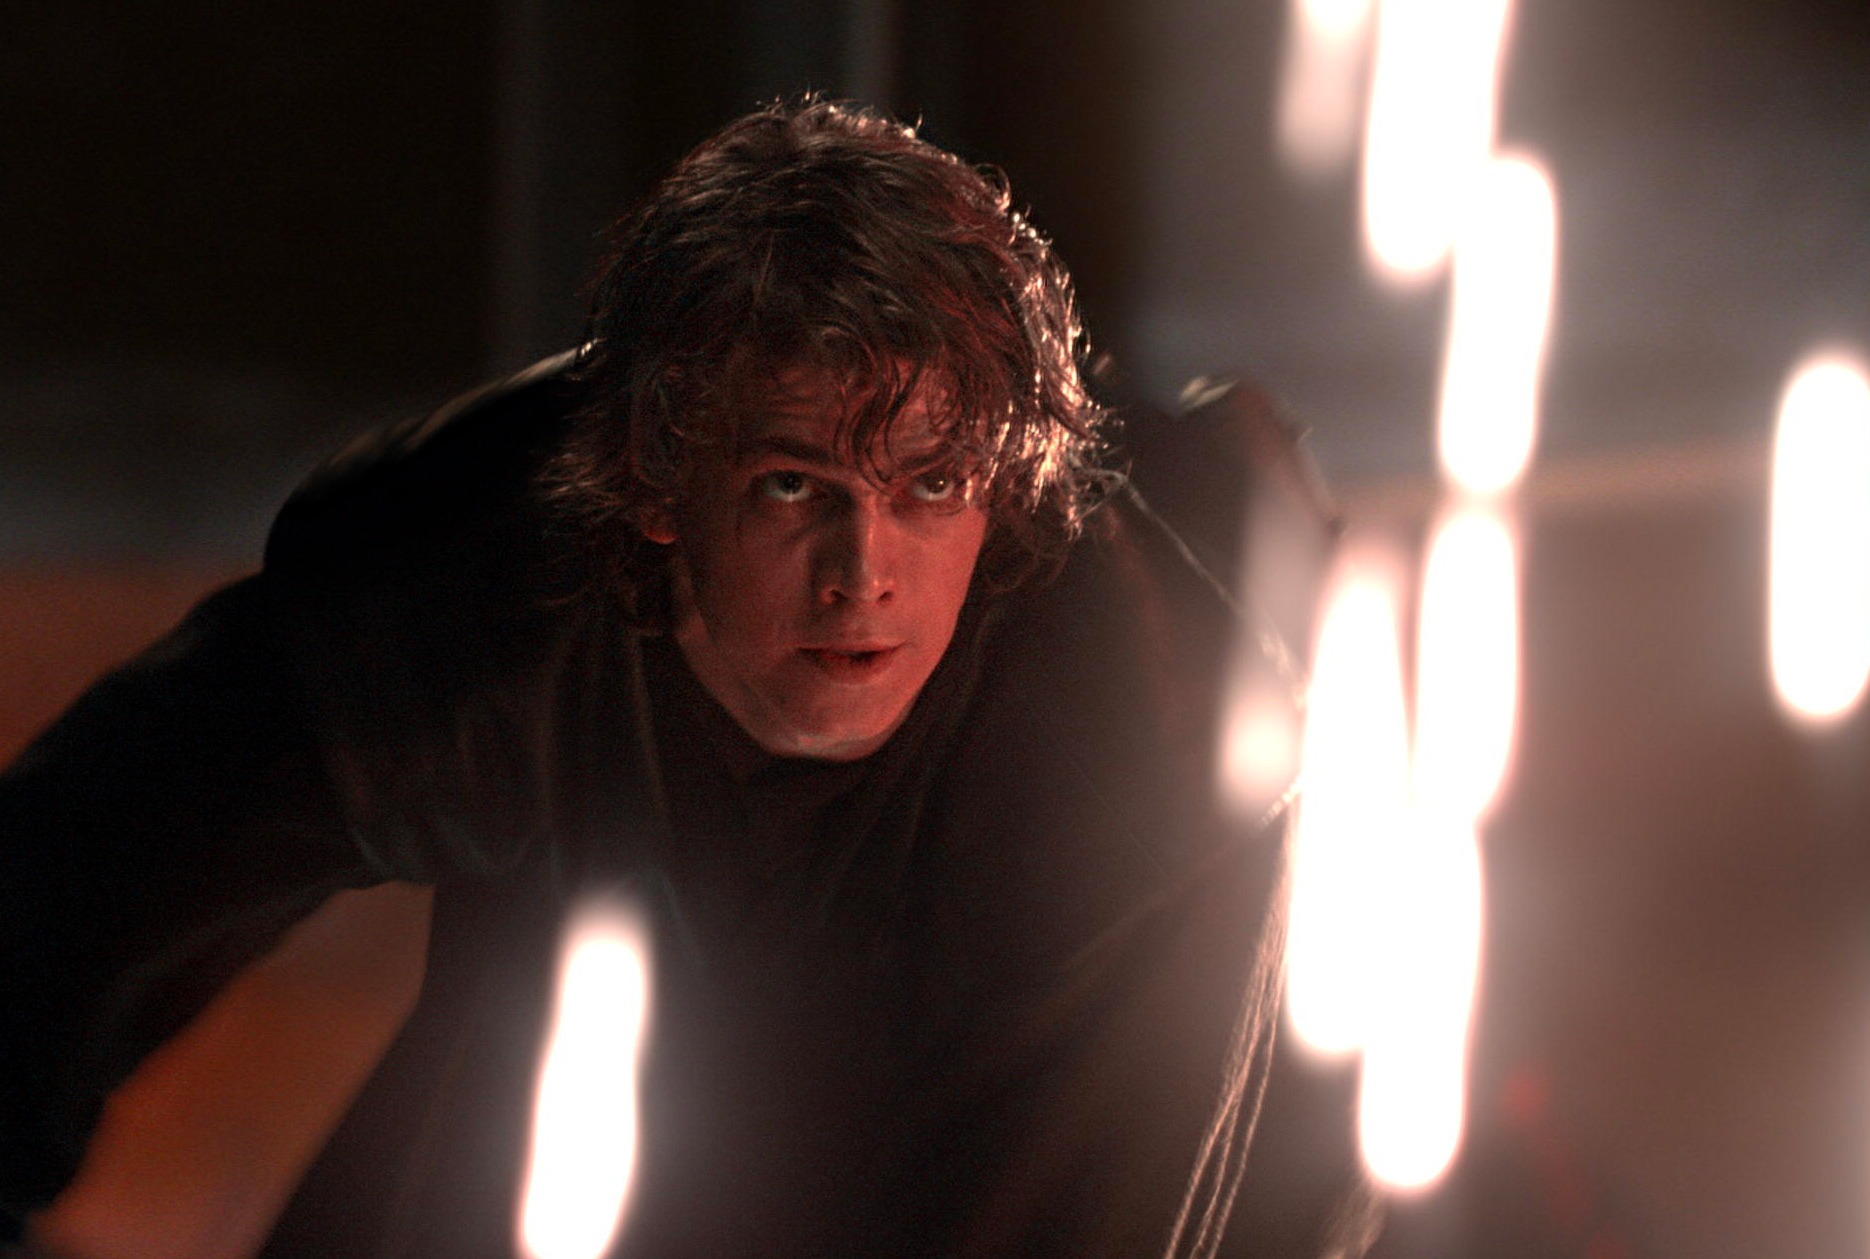 Hayden Christensen: Vanished After Star Wars, This Is Where He's At Now